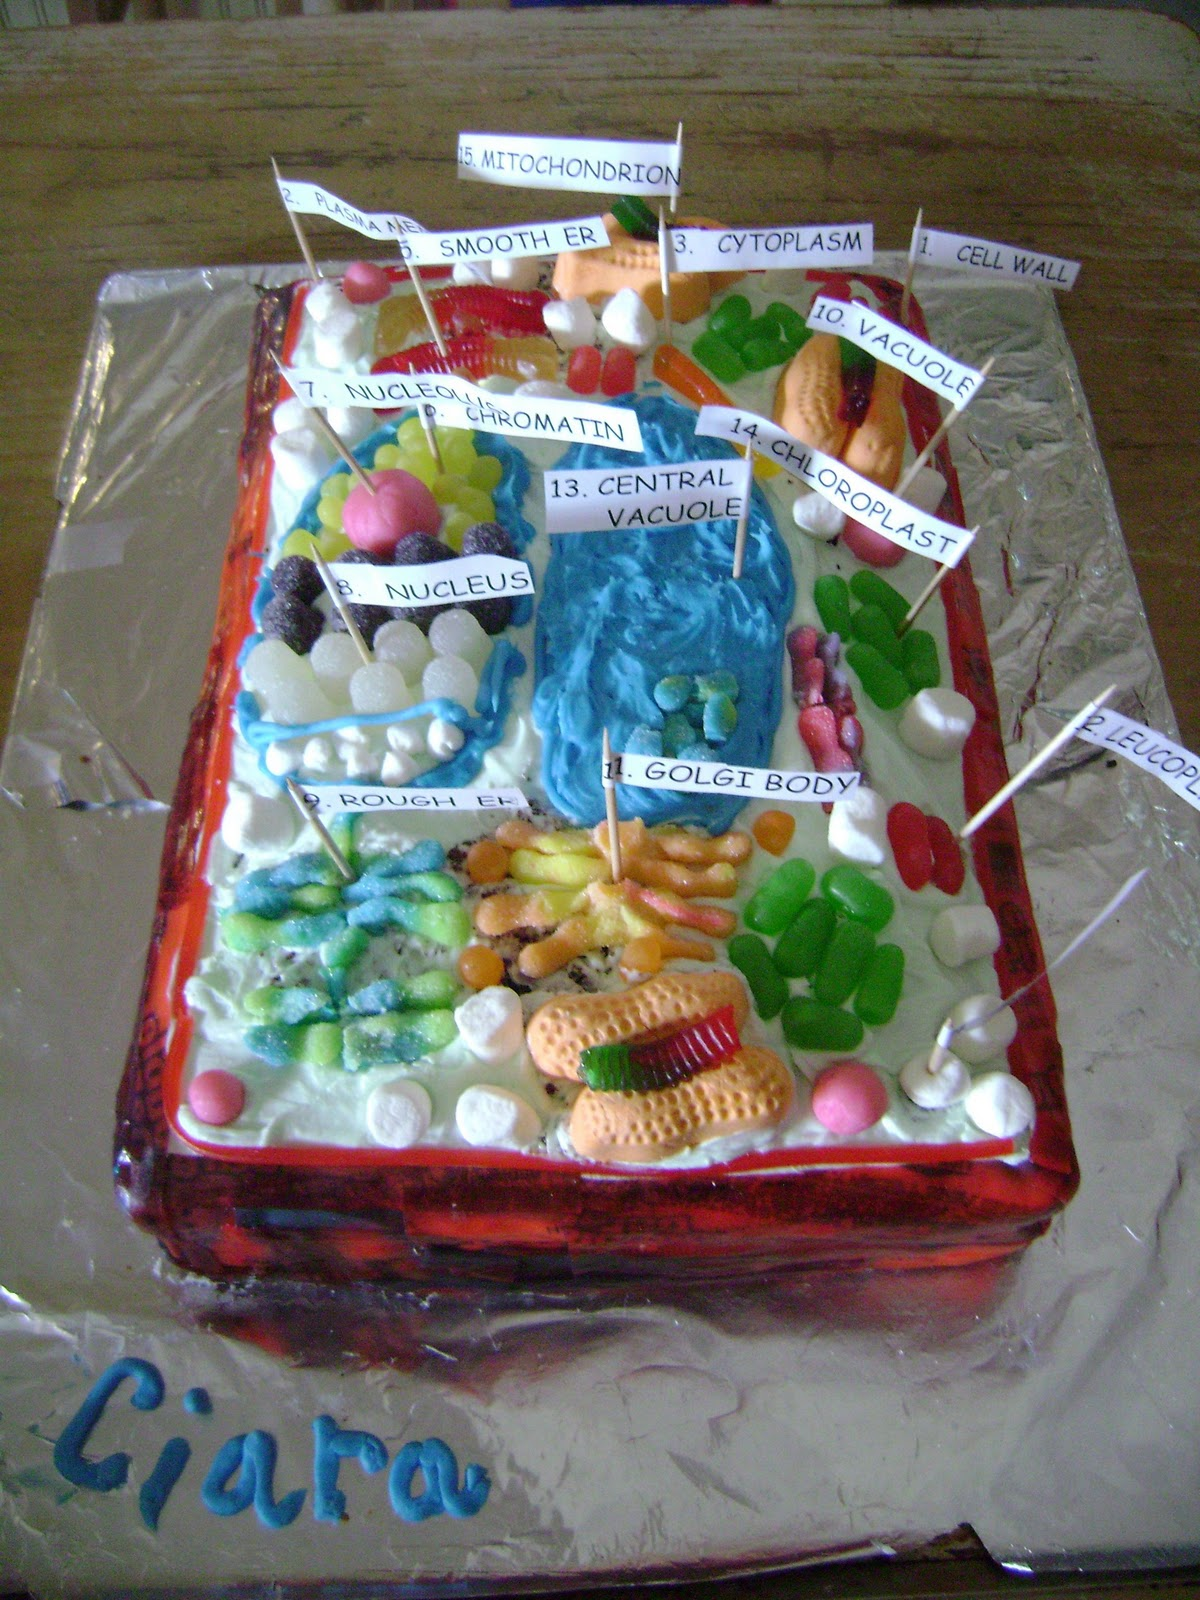 Edible Plant Cell Project Ideas http://burganfamily.blogspot.com/2010/10/edible-cell-project.html